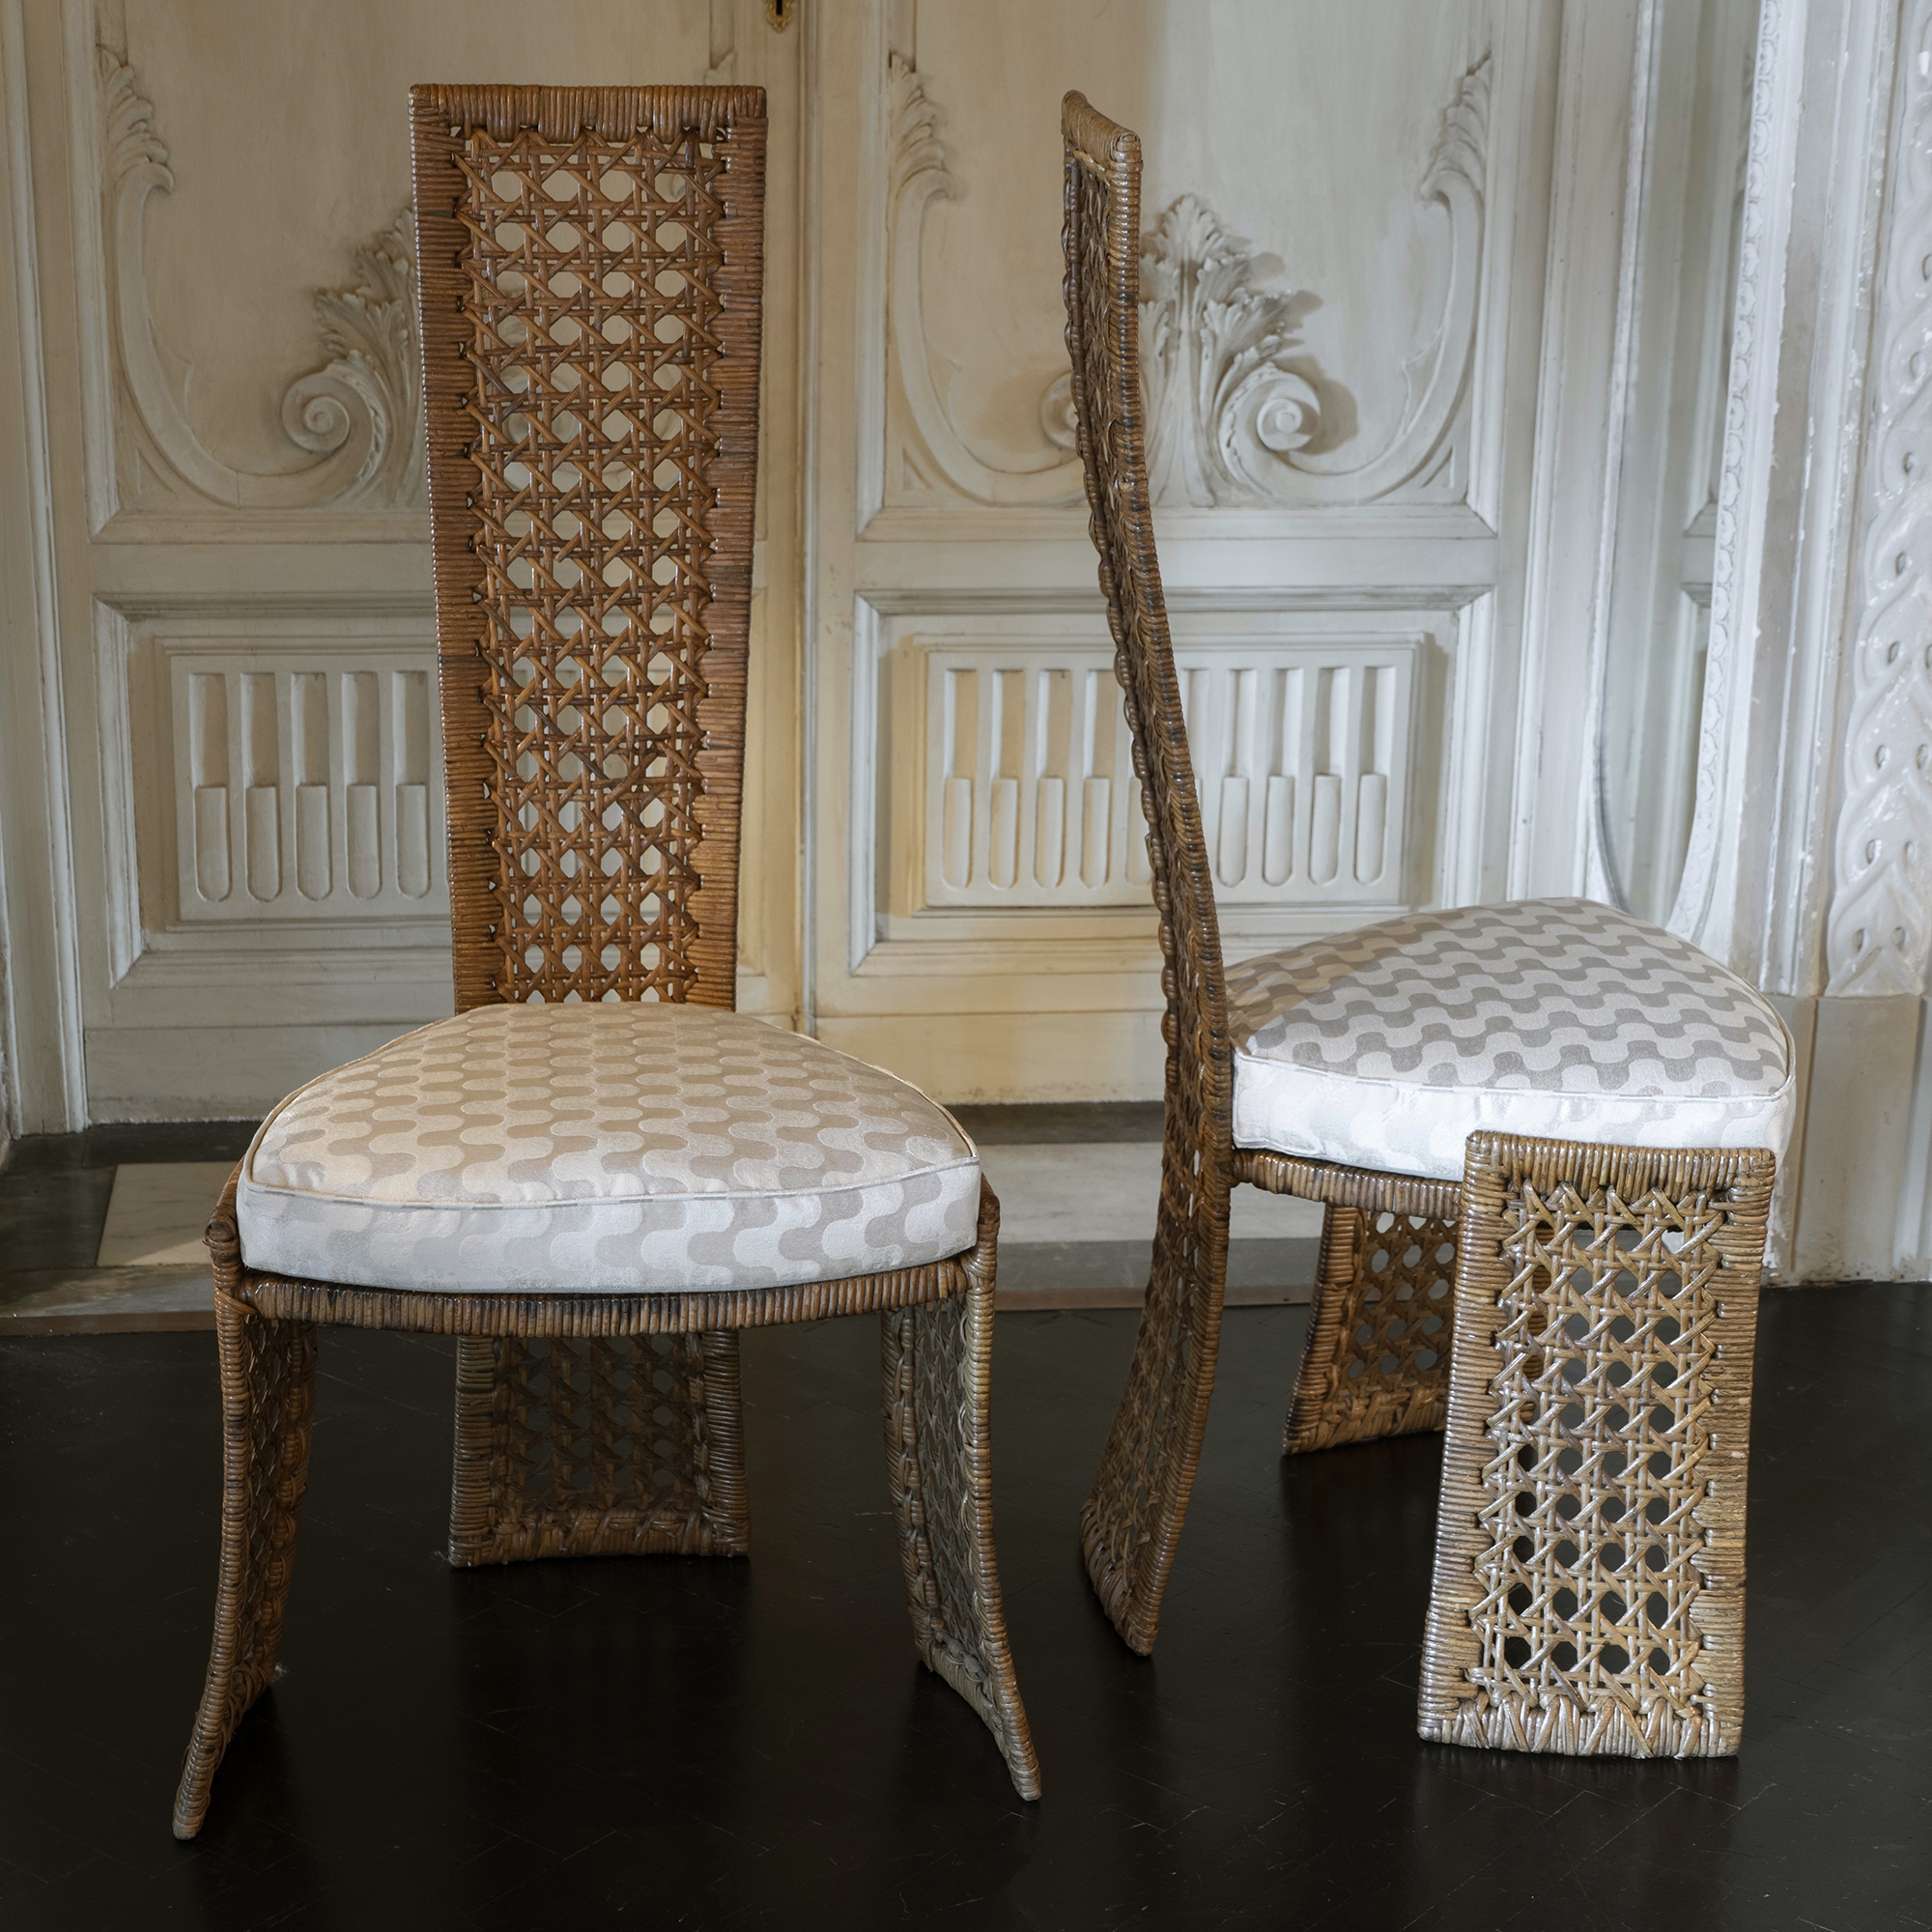 1980s Marzio Cecchi for Studio Most Rattan Chairs, Italy